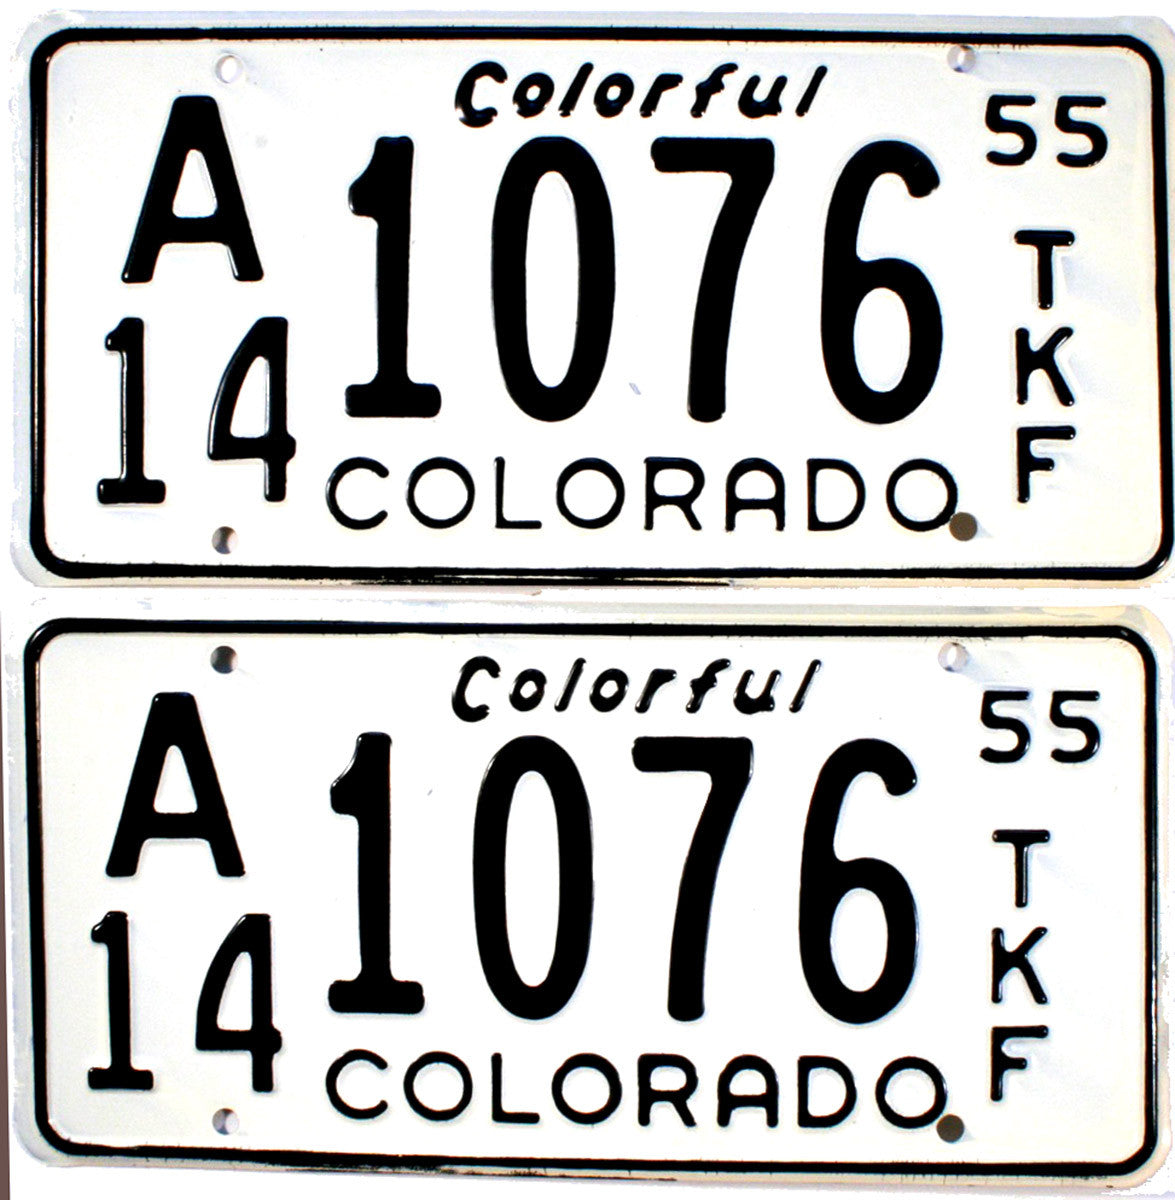 1955 Colorado Farm Truck License Plates